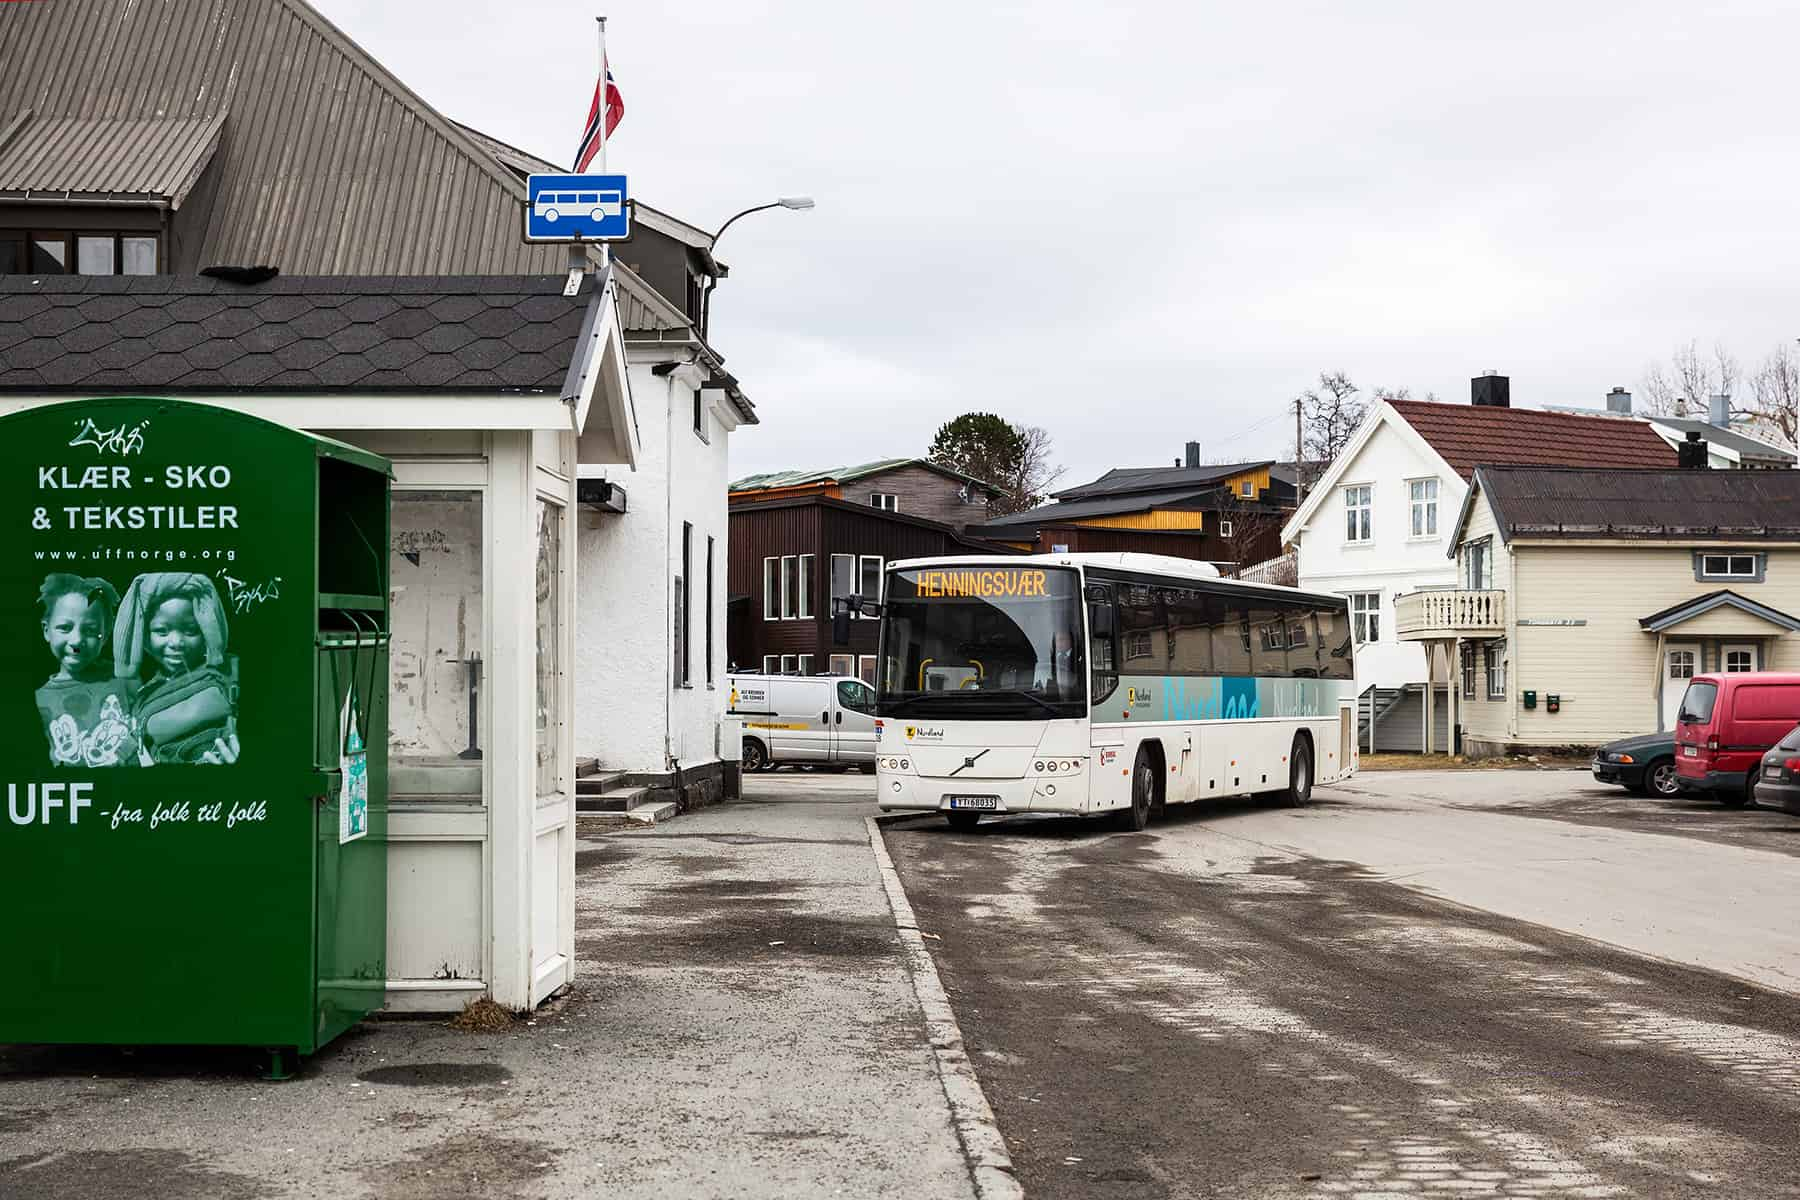 The bus stop in Kabelvåg.